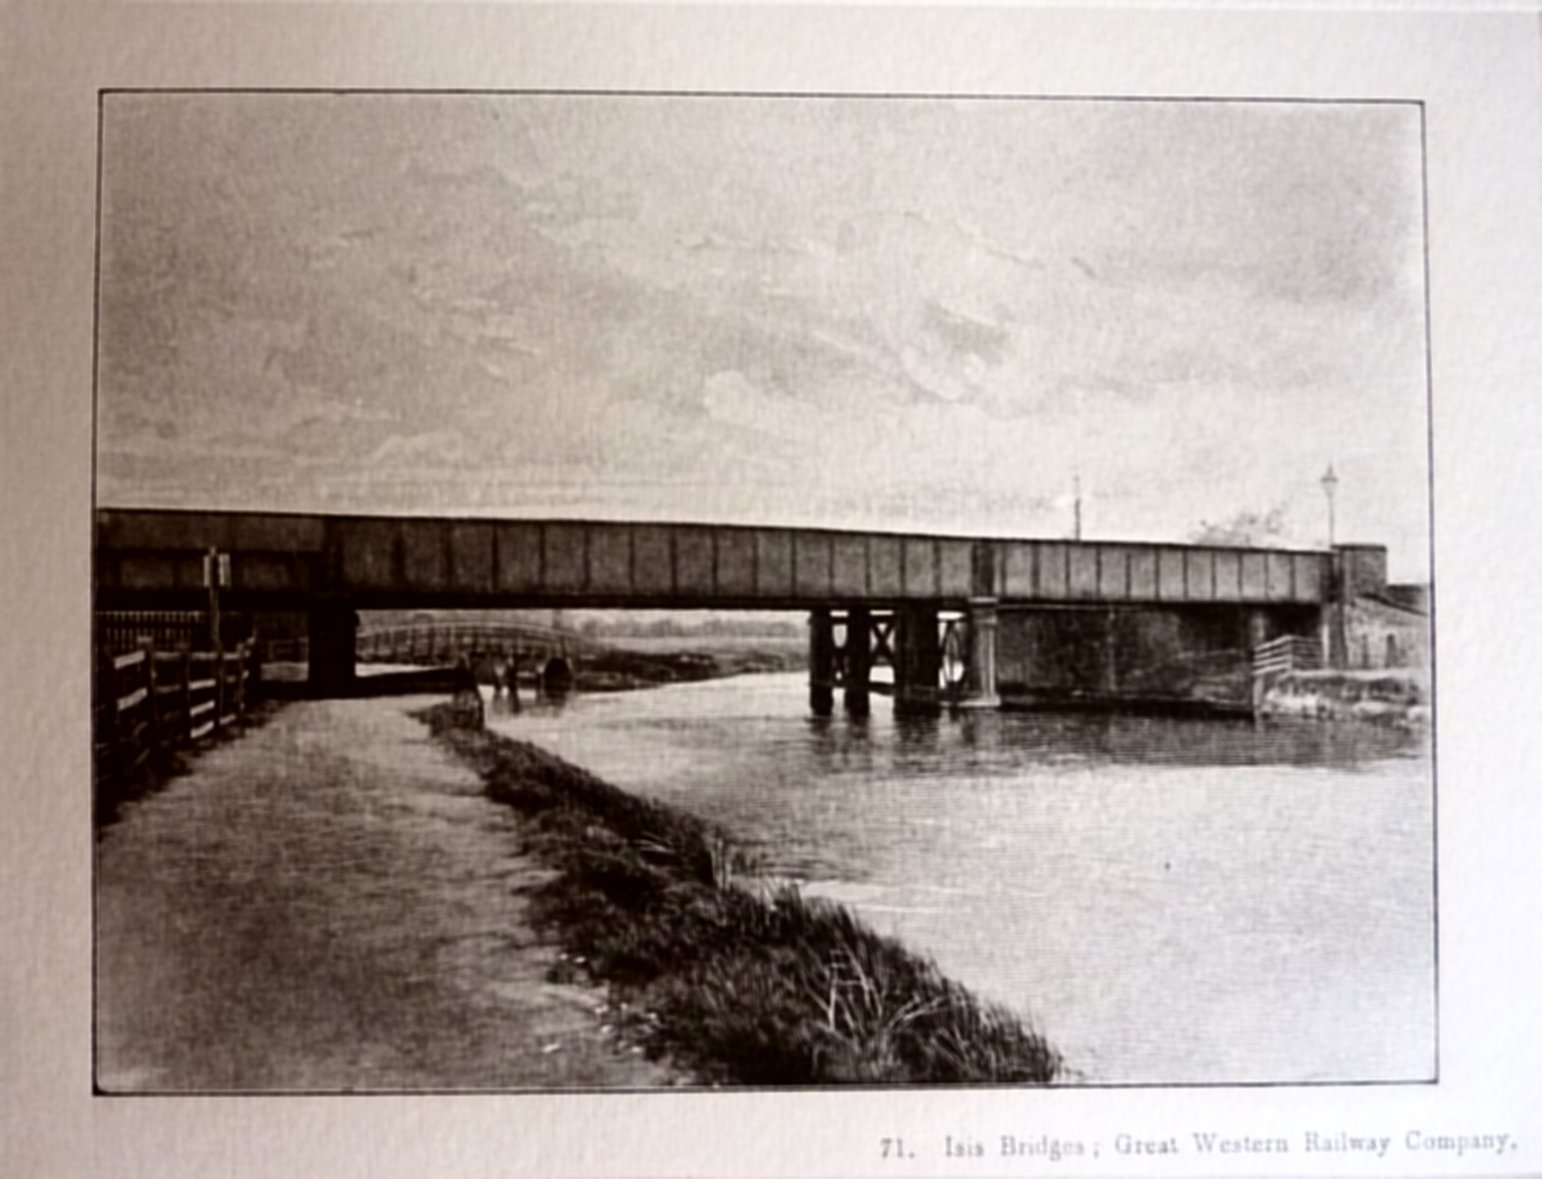 [GWR Isis Bridge for gasworks spur Dredge 1897]